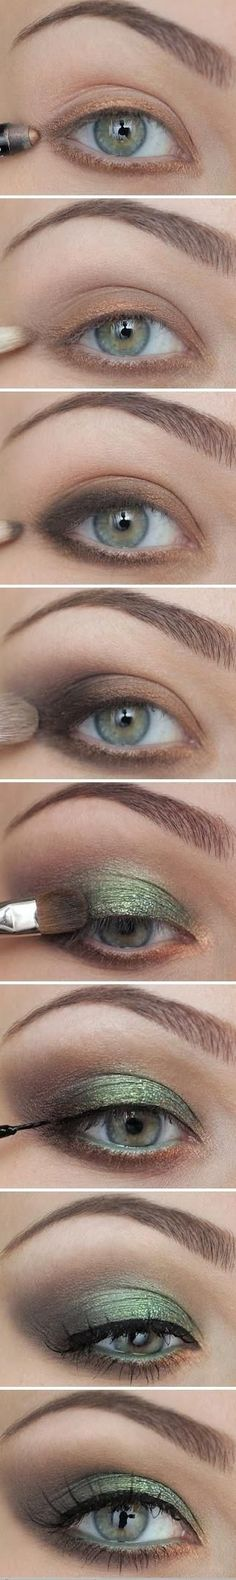 DIY Eye Makeup Tutorial Pictures, Photos, and Images for Facebook, Tumblr, Pinterest, and Twitter